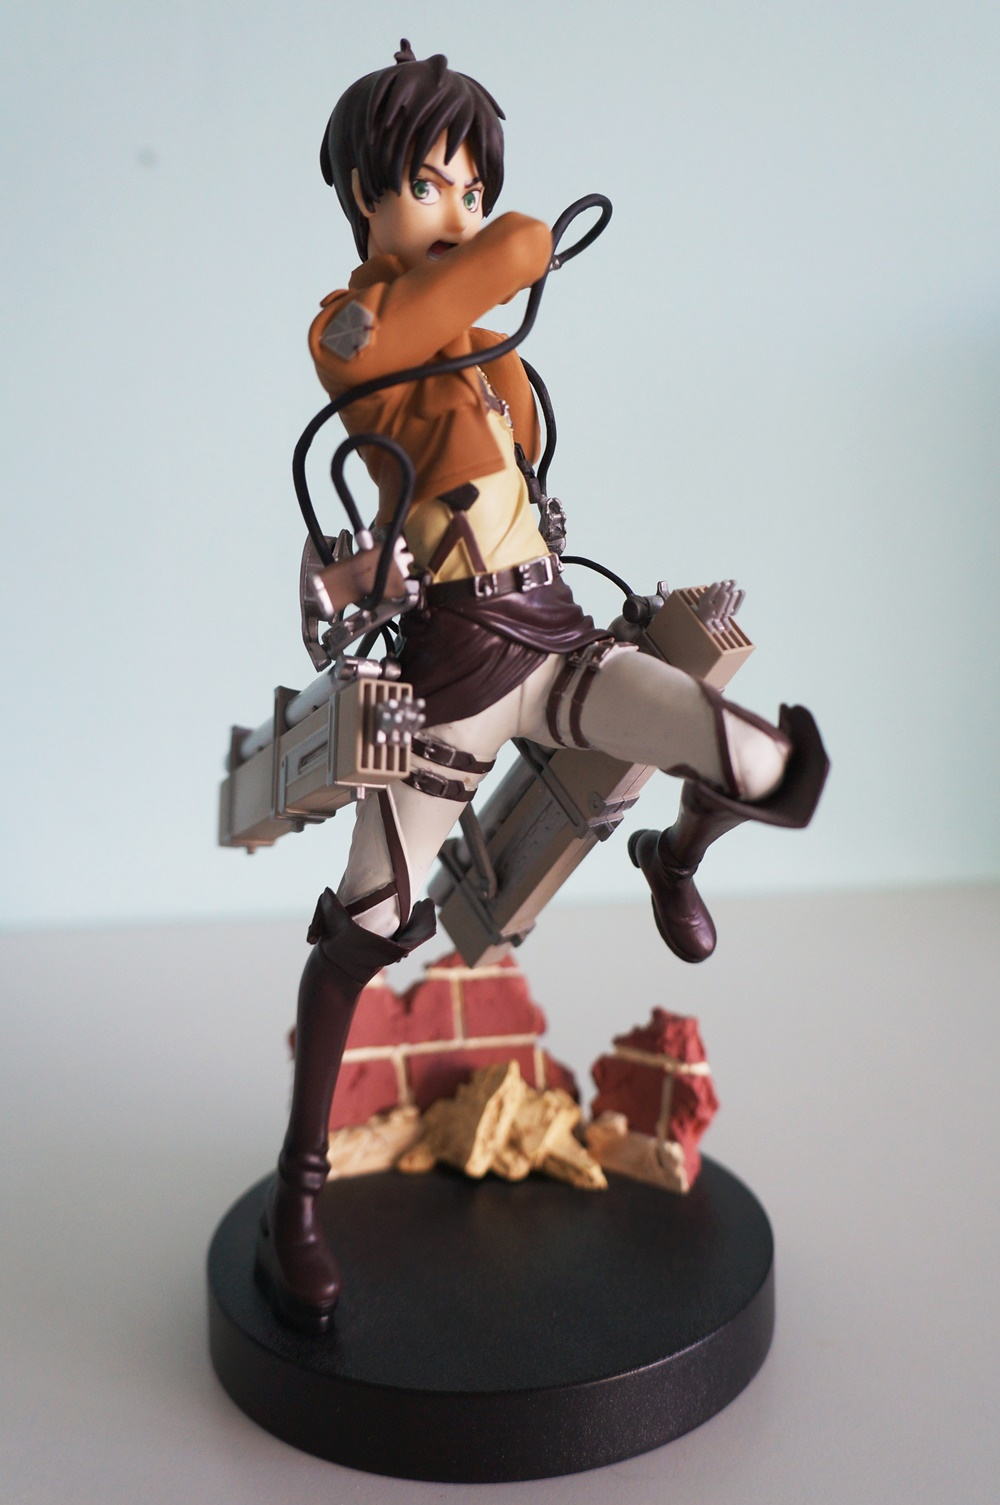 Eren Yeager figure from FuRyu